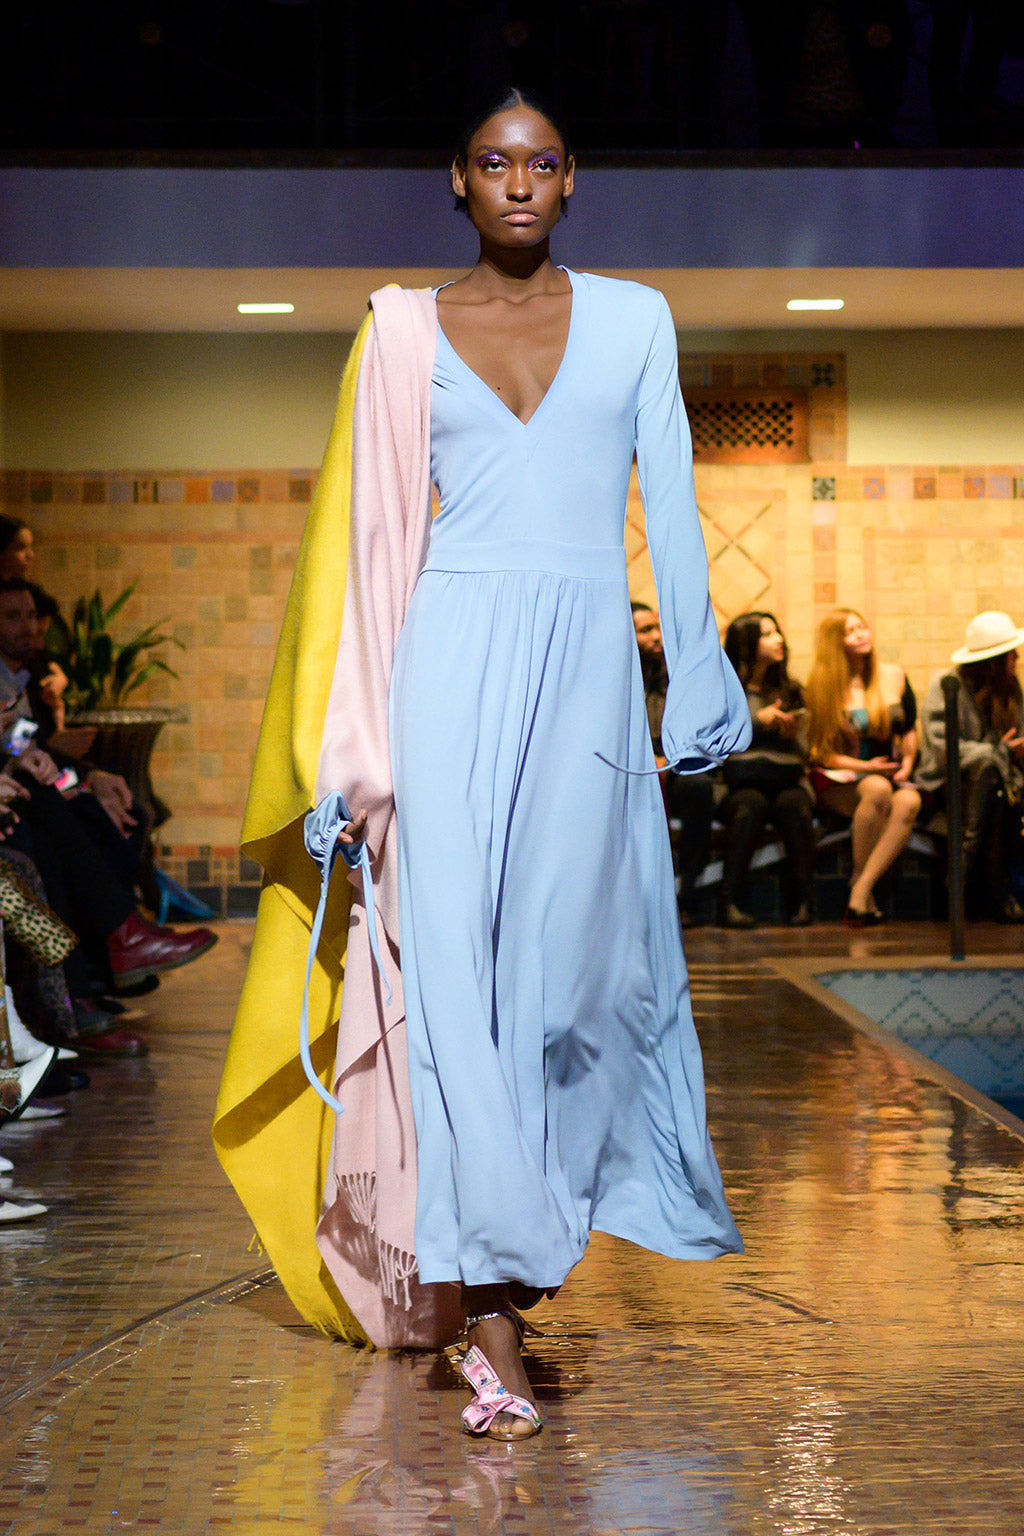 Cynthia Rowley Fall 2019 look 25 featuring a blue v-neck maxi dress with long sleeves